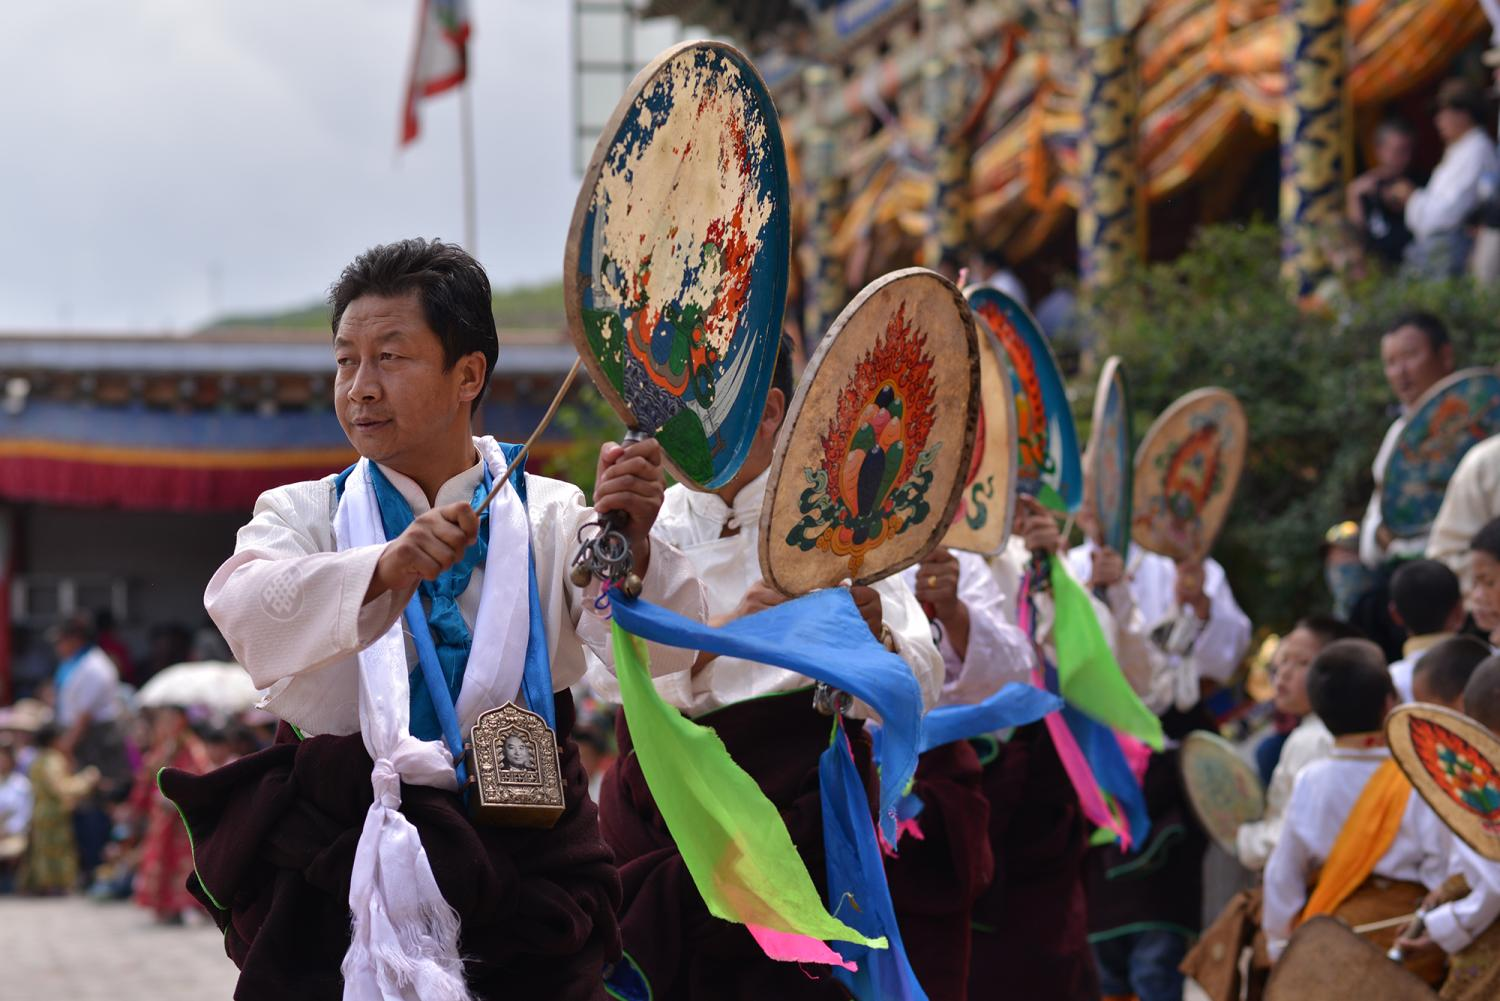 """Men perform La tsey (Lha rtsed ལྷ་རྩེད), or """"God Play,"""" by beating small drums while moving in a rhythmic regimented pattern."""